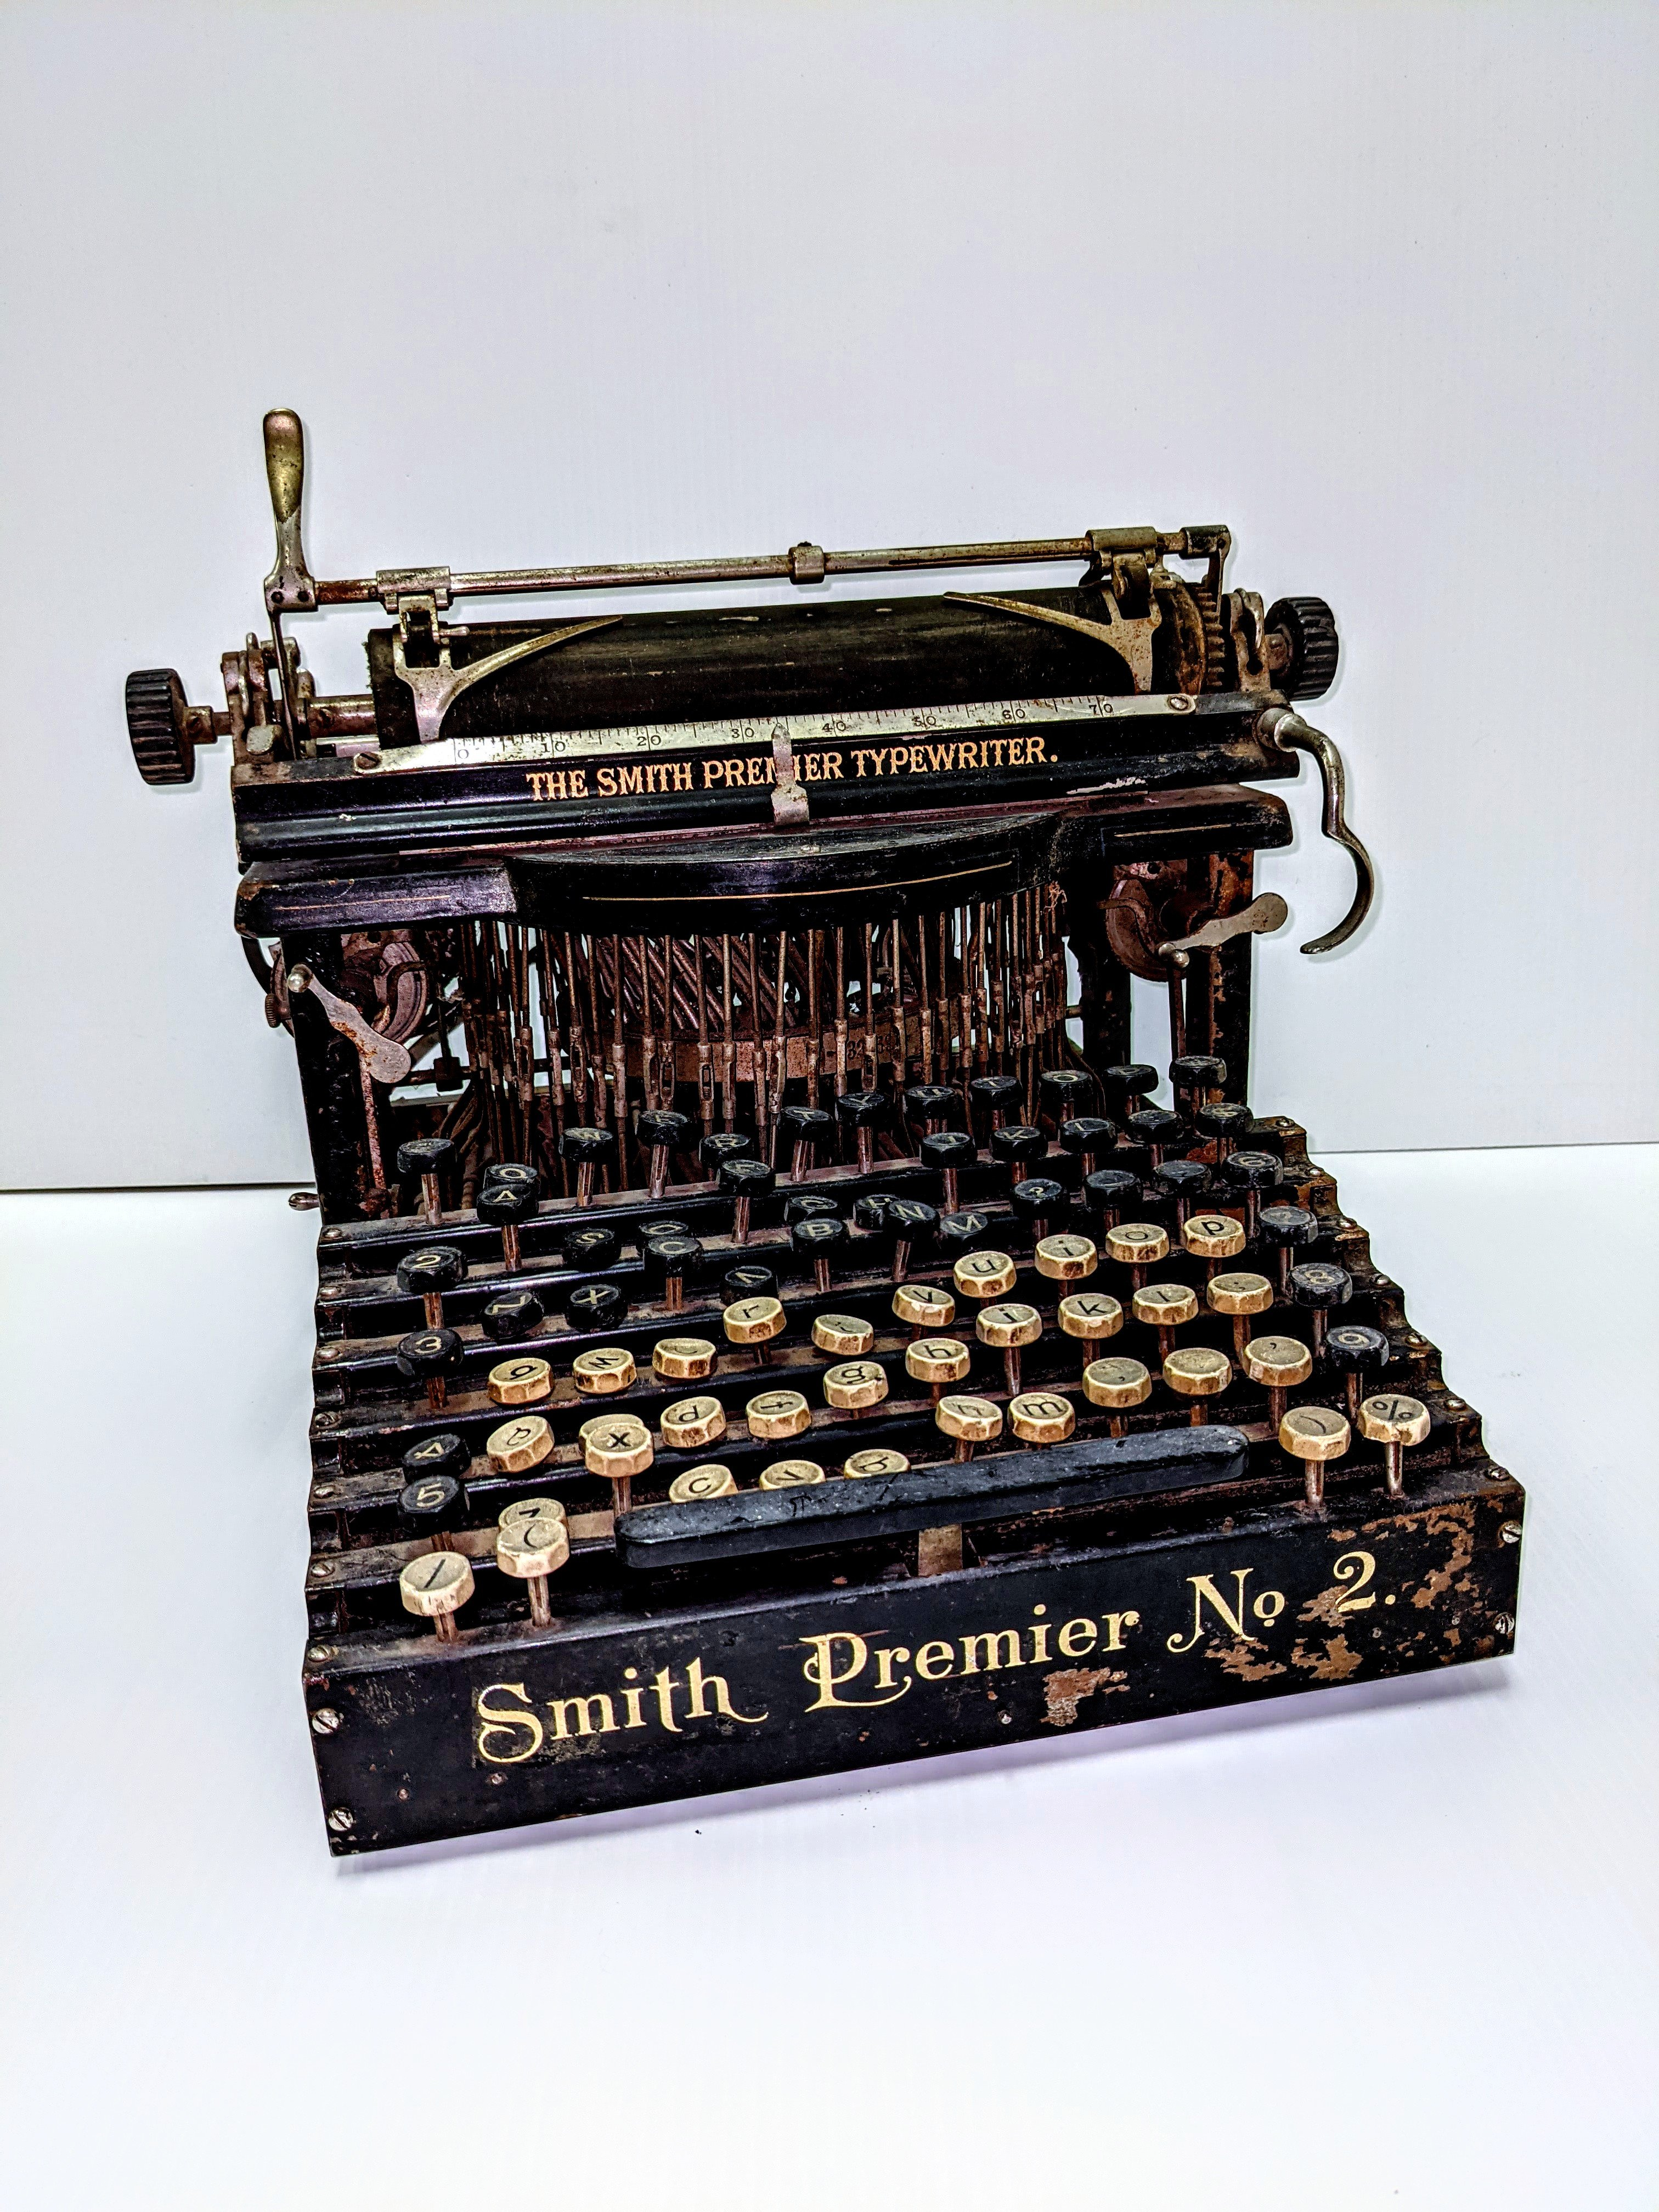 This Smith Premier No 2. Typewriter dates from 1904.  This typewriter has 2 full keyboard sets (one of upper case and one of lowercase) and uses an upstrike mechanism which makes it a 'Blindwriter'. Using this machine the typist cannot see what they are typing until they flip up the page roller mechanism. This differs from the 'modern' or 'visible' typewriter in which the typists sees what they are typing.  Another unique feature is the hand cranked cleaning brush for cleaning the typebars.   15/03/2021 2004.03.04 / Twidale, John & Alfa